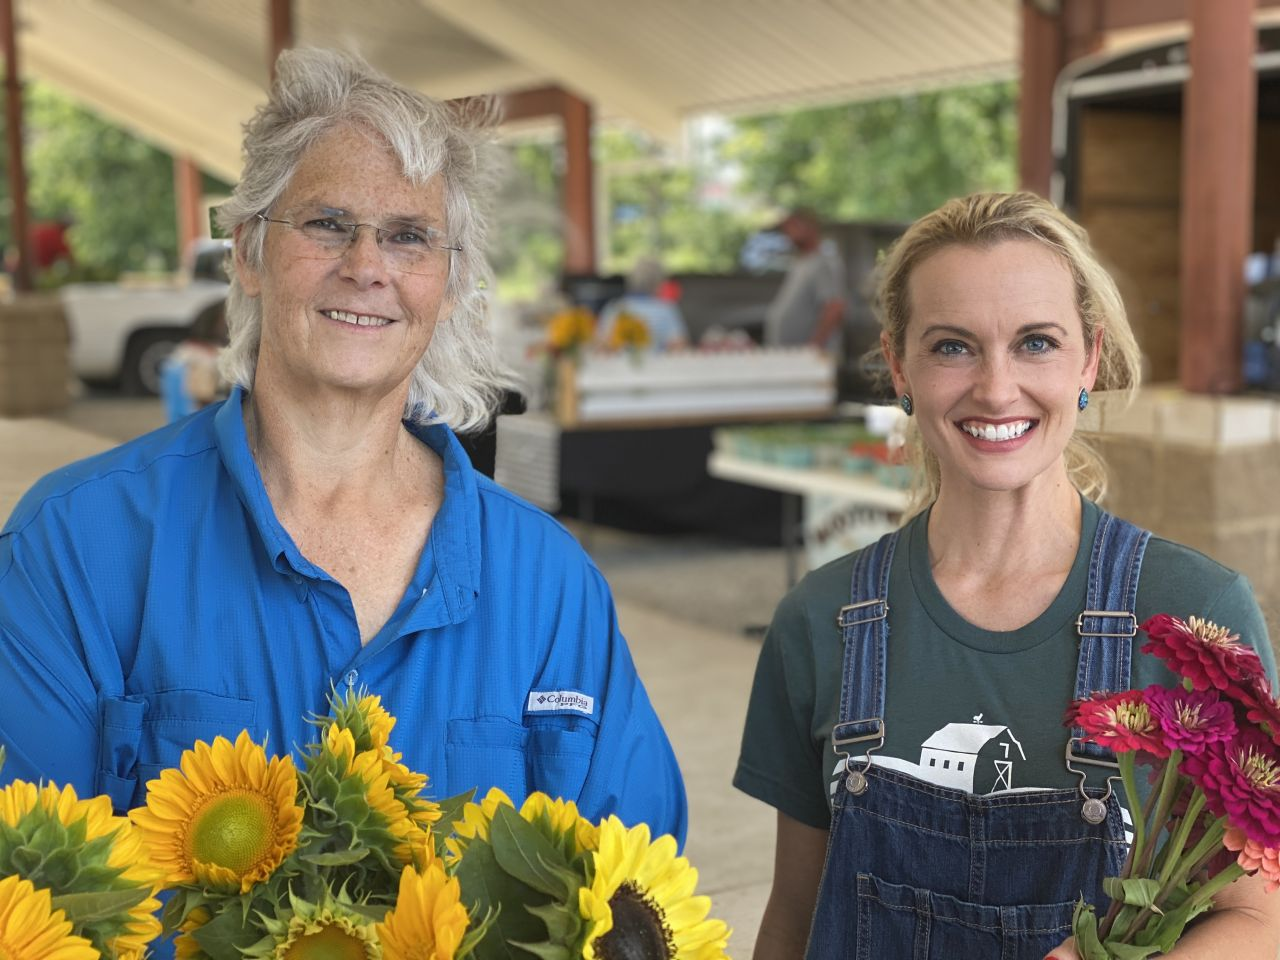 Dr. Kim Pittcock and Good Roots Hosts Lauren McCullough, holding a bunch of fresh zinnias, stand together at the ASU Regional Farmers Market.